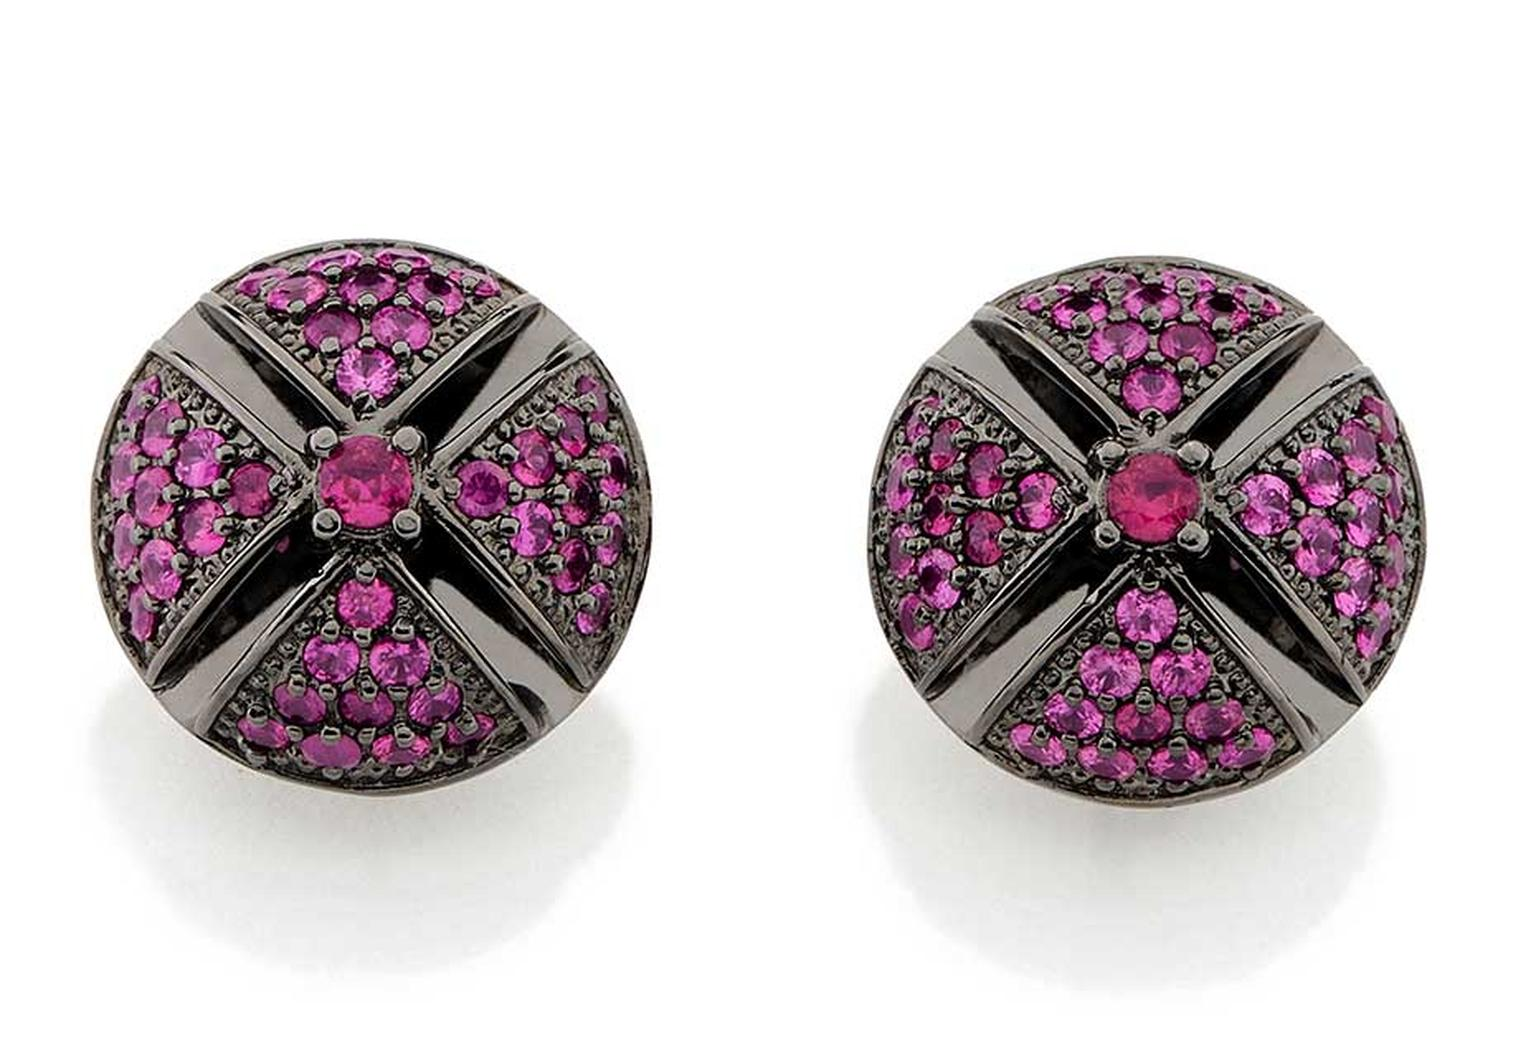 Carla Amorim Russia Collection Dome ruby earrings, inspired by the domes of St Basil's Cathedral in Moscow's Red Square